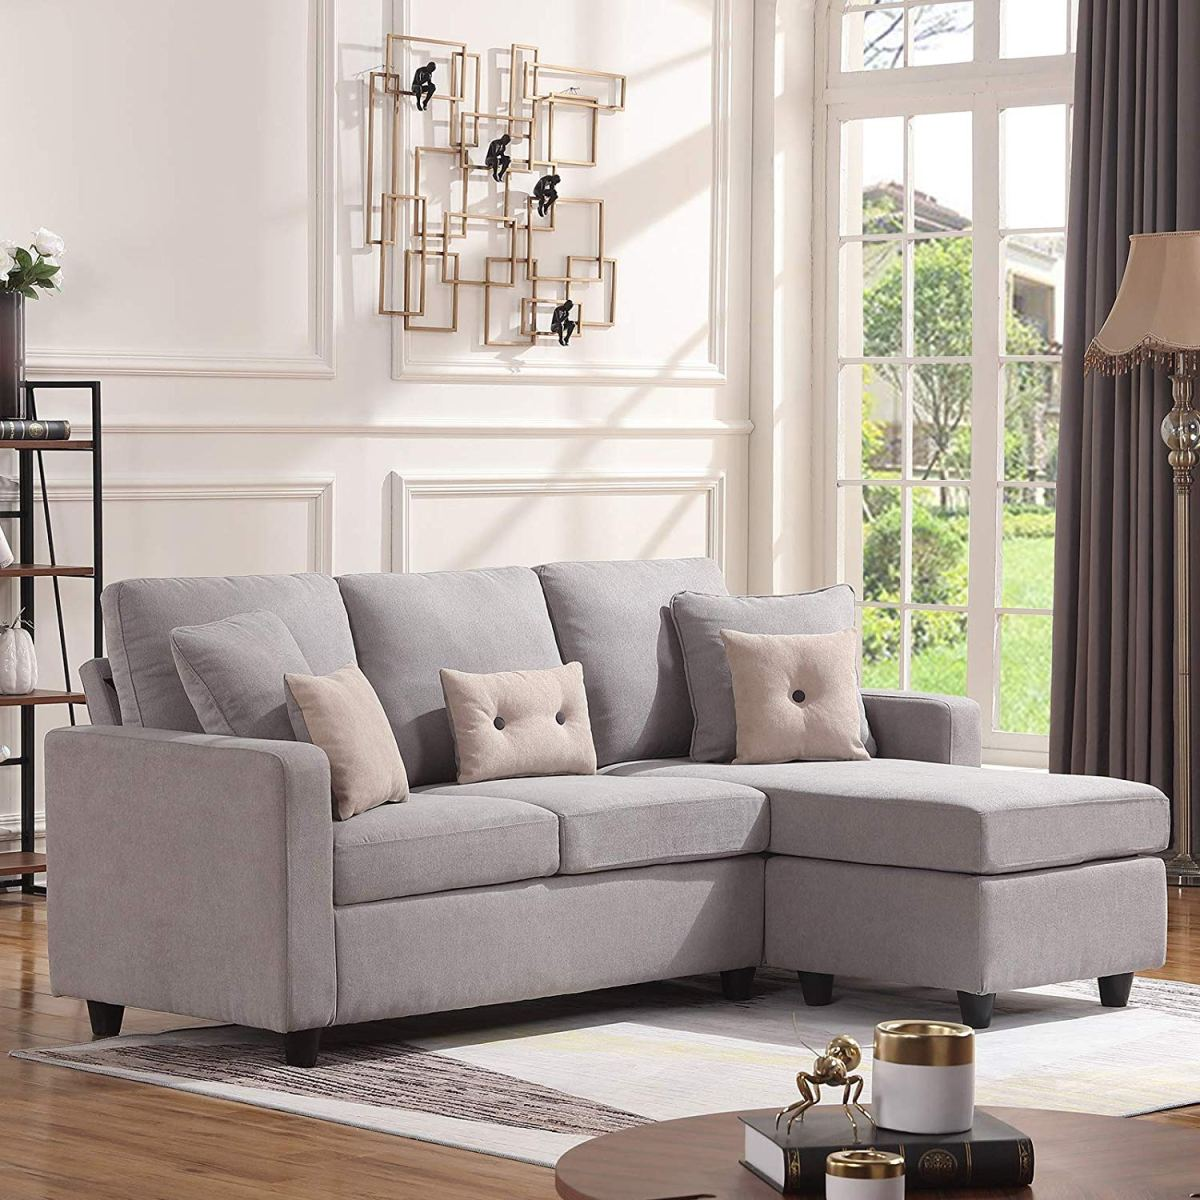 Cool Review Honbay Convertible Sectional Sofa Couch L Shaped Pabps2019 Chair Design Images Pabps2019Com